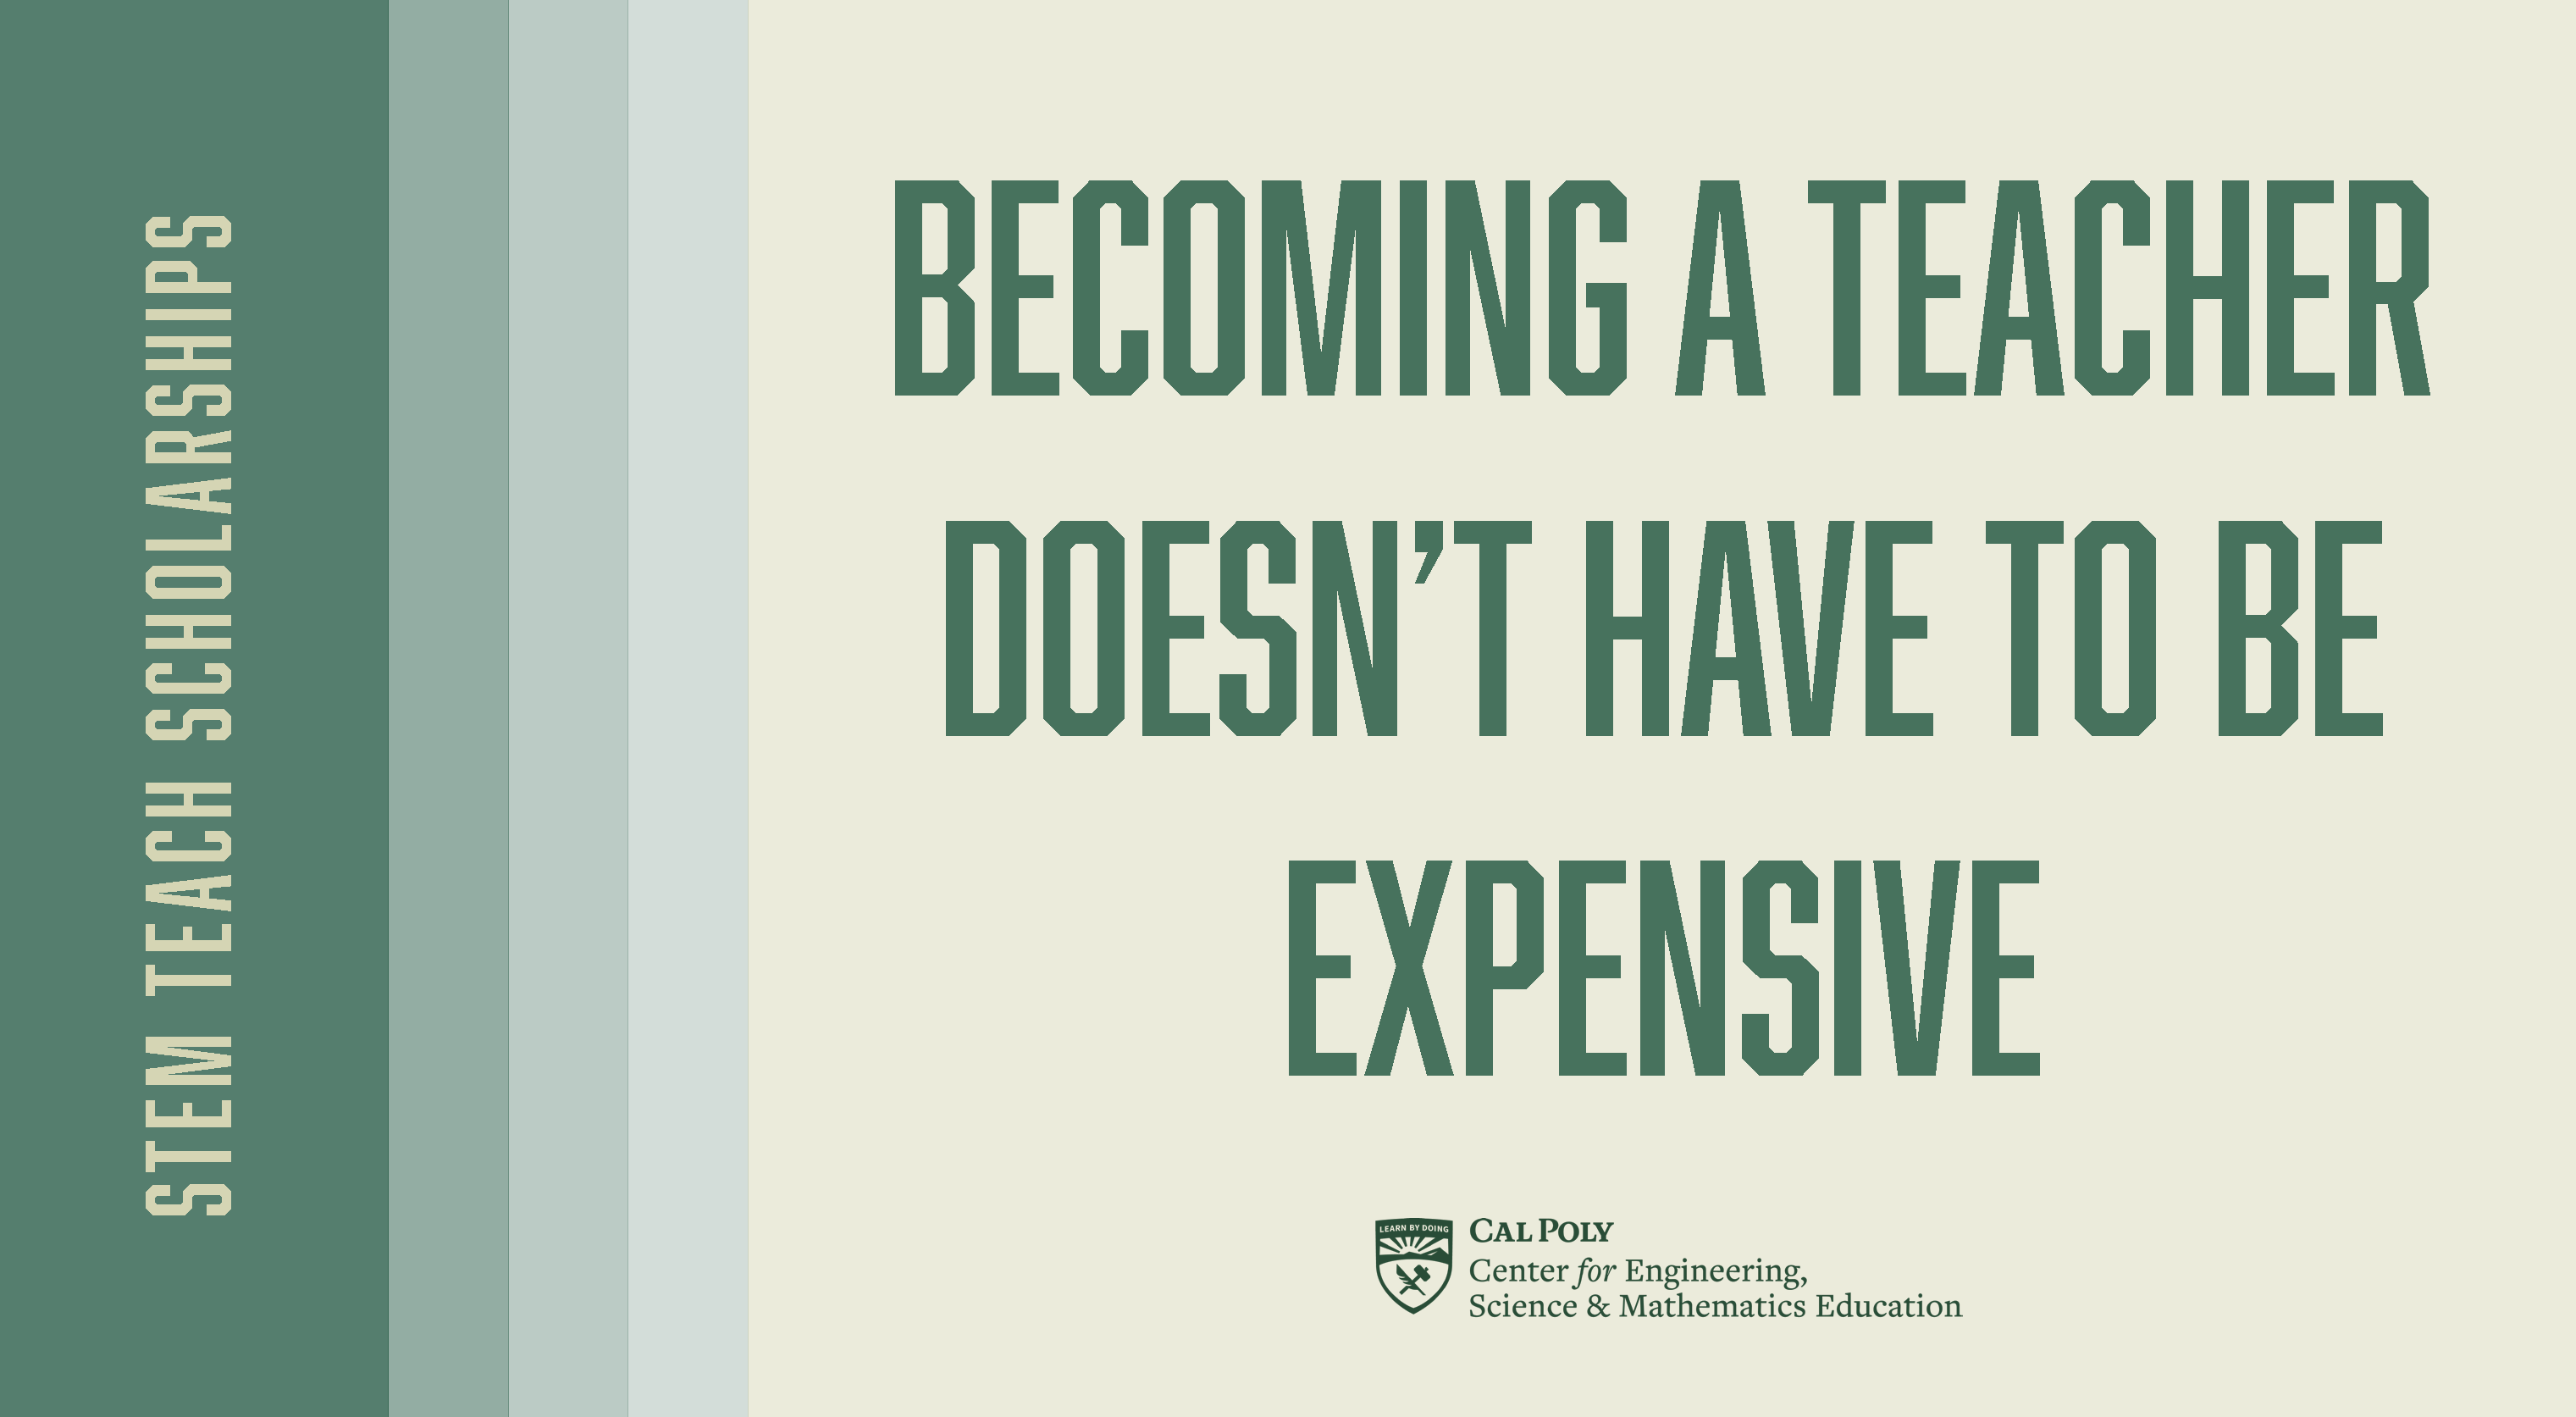 Becoming a teacher doesn't have to be expensive